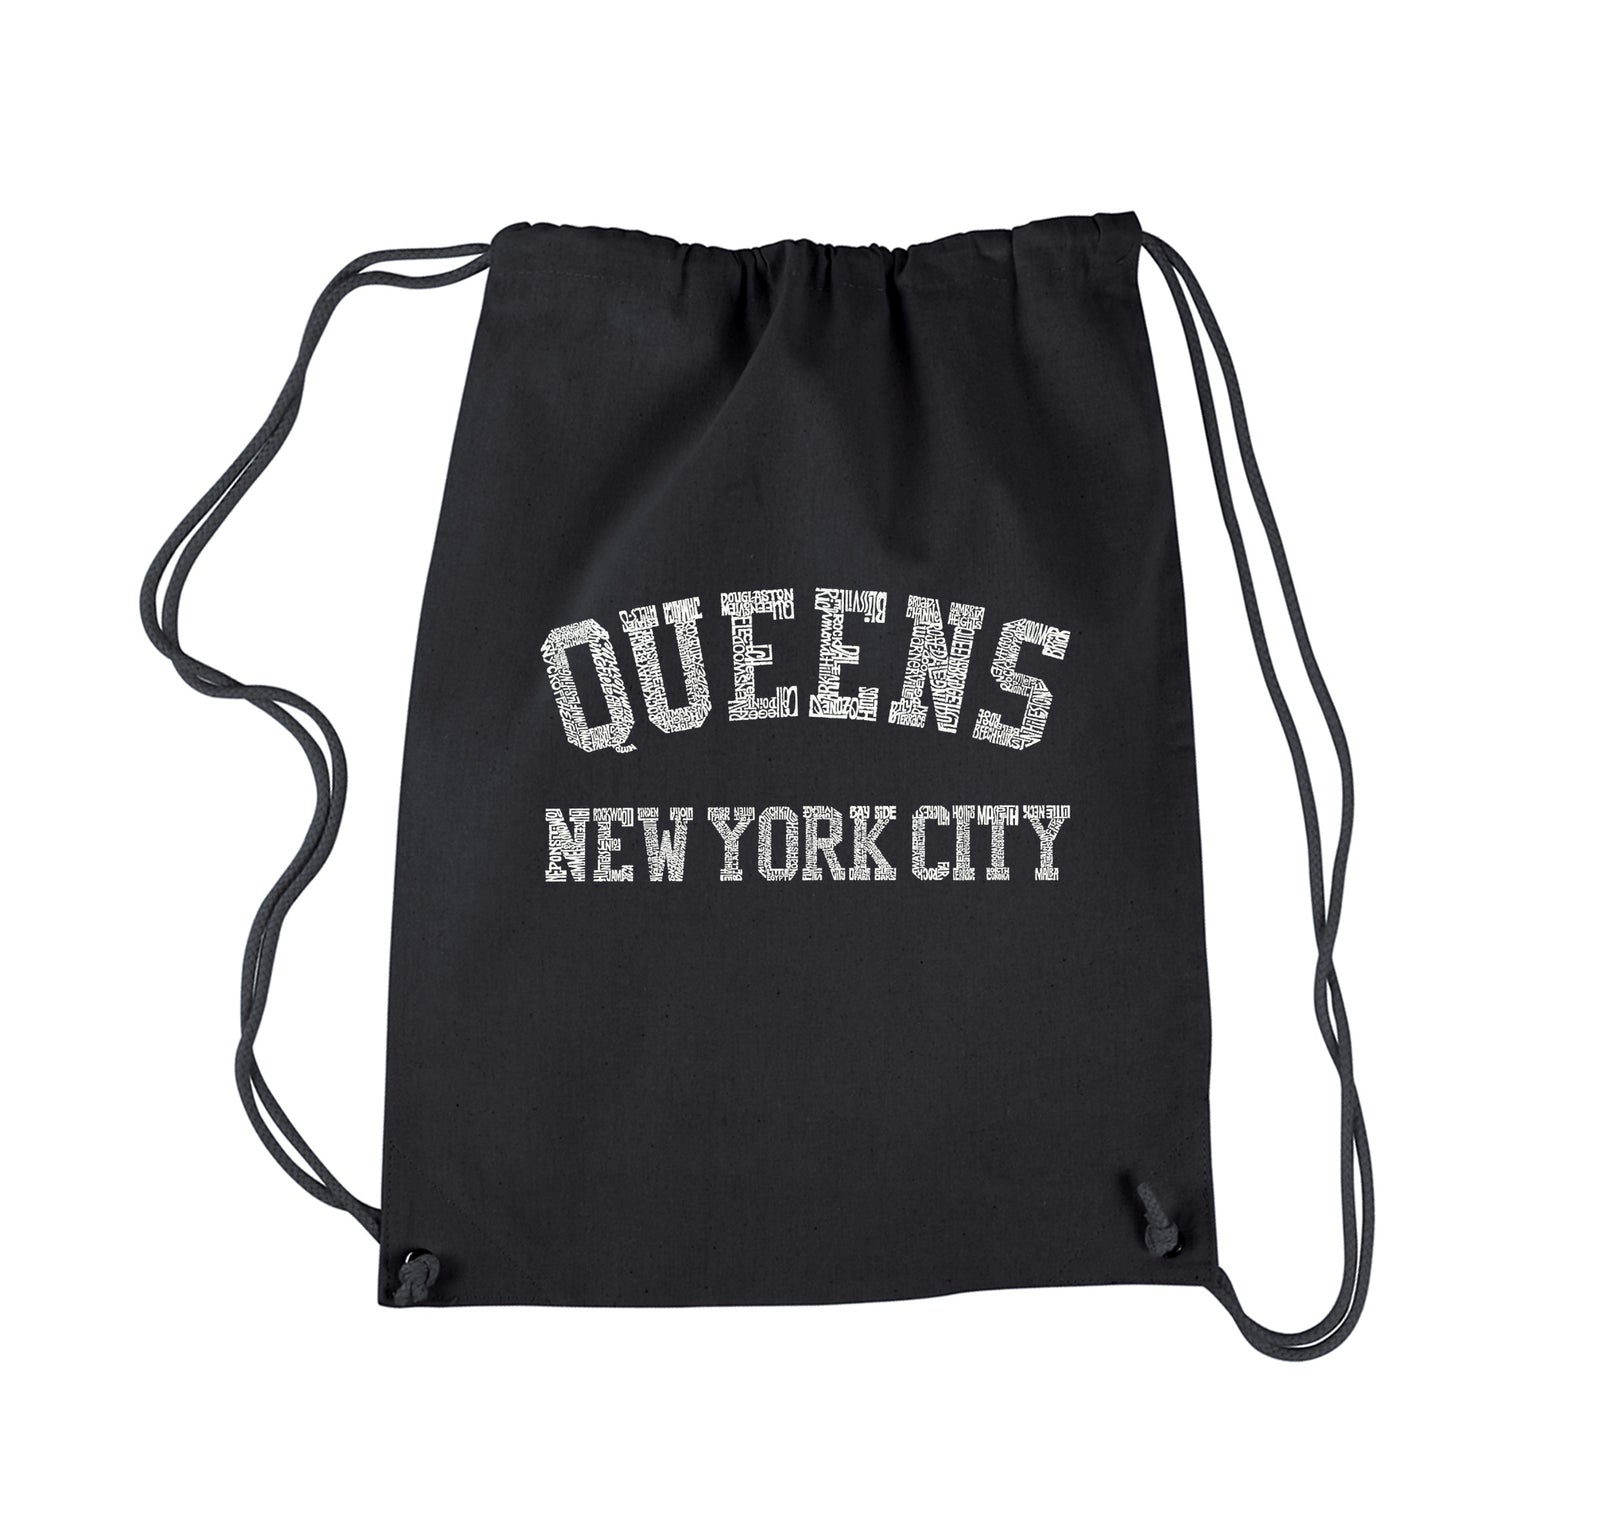 Drawstring Backpack - POPULAR NEIGHBORHOODS IN QUEENS, NY